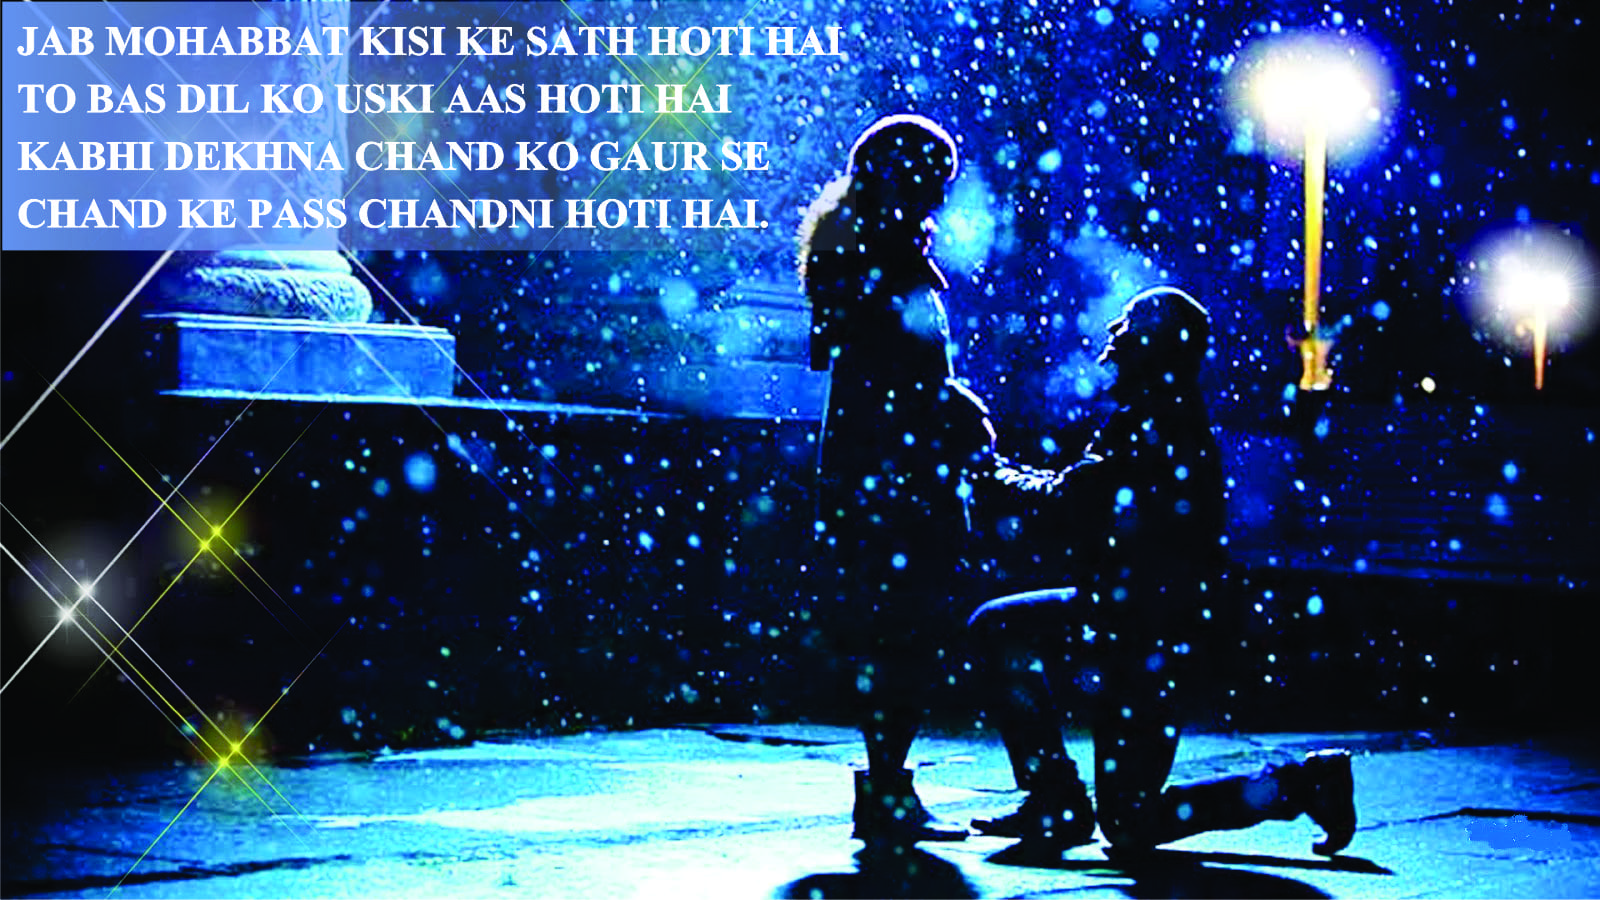 Download Wallpaper Hd Love Shayari